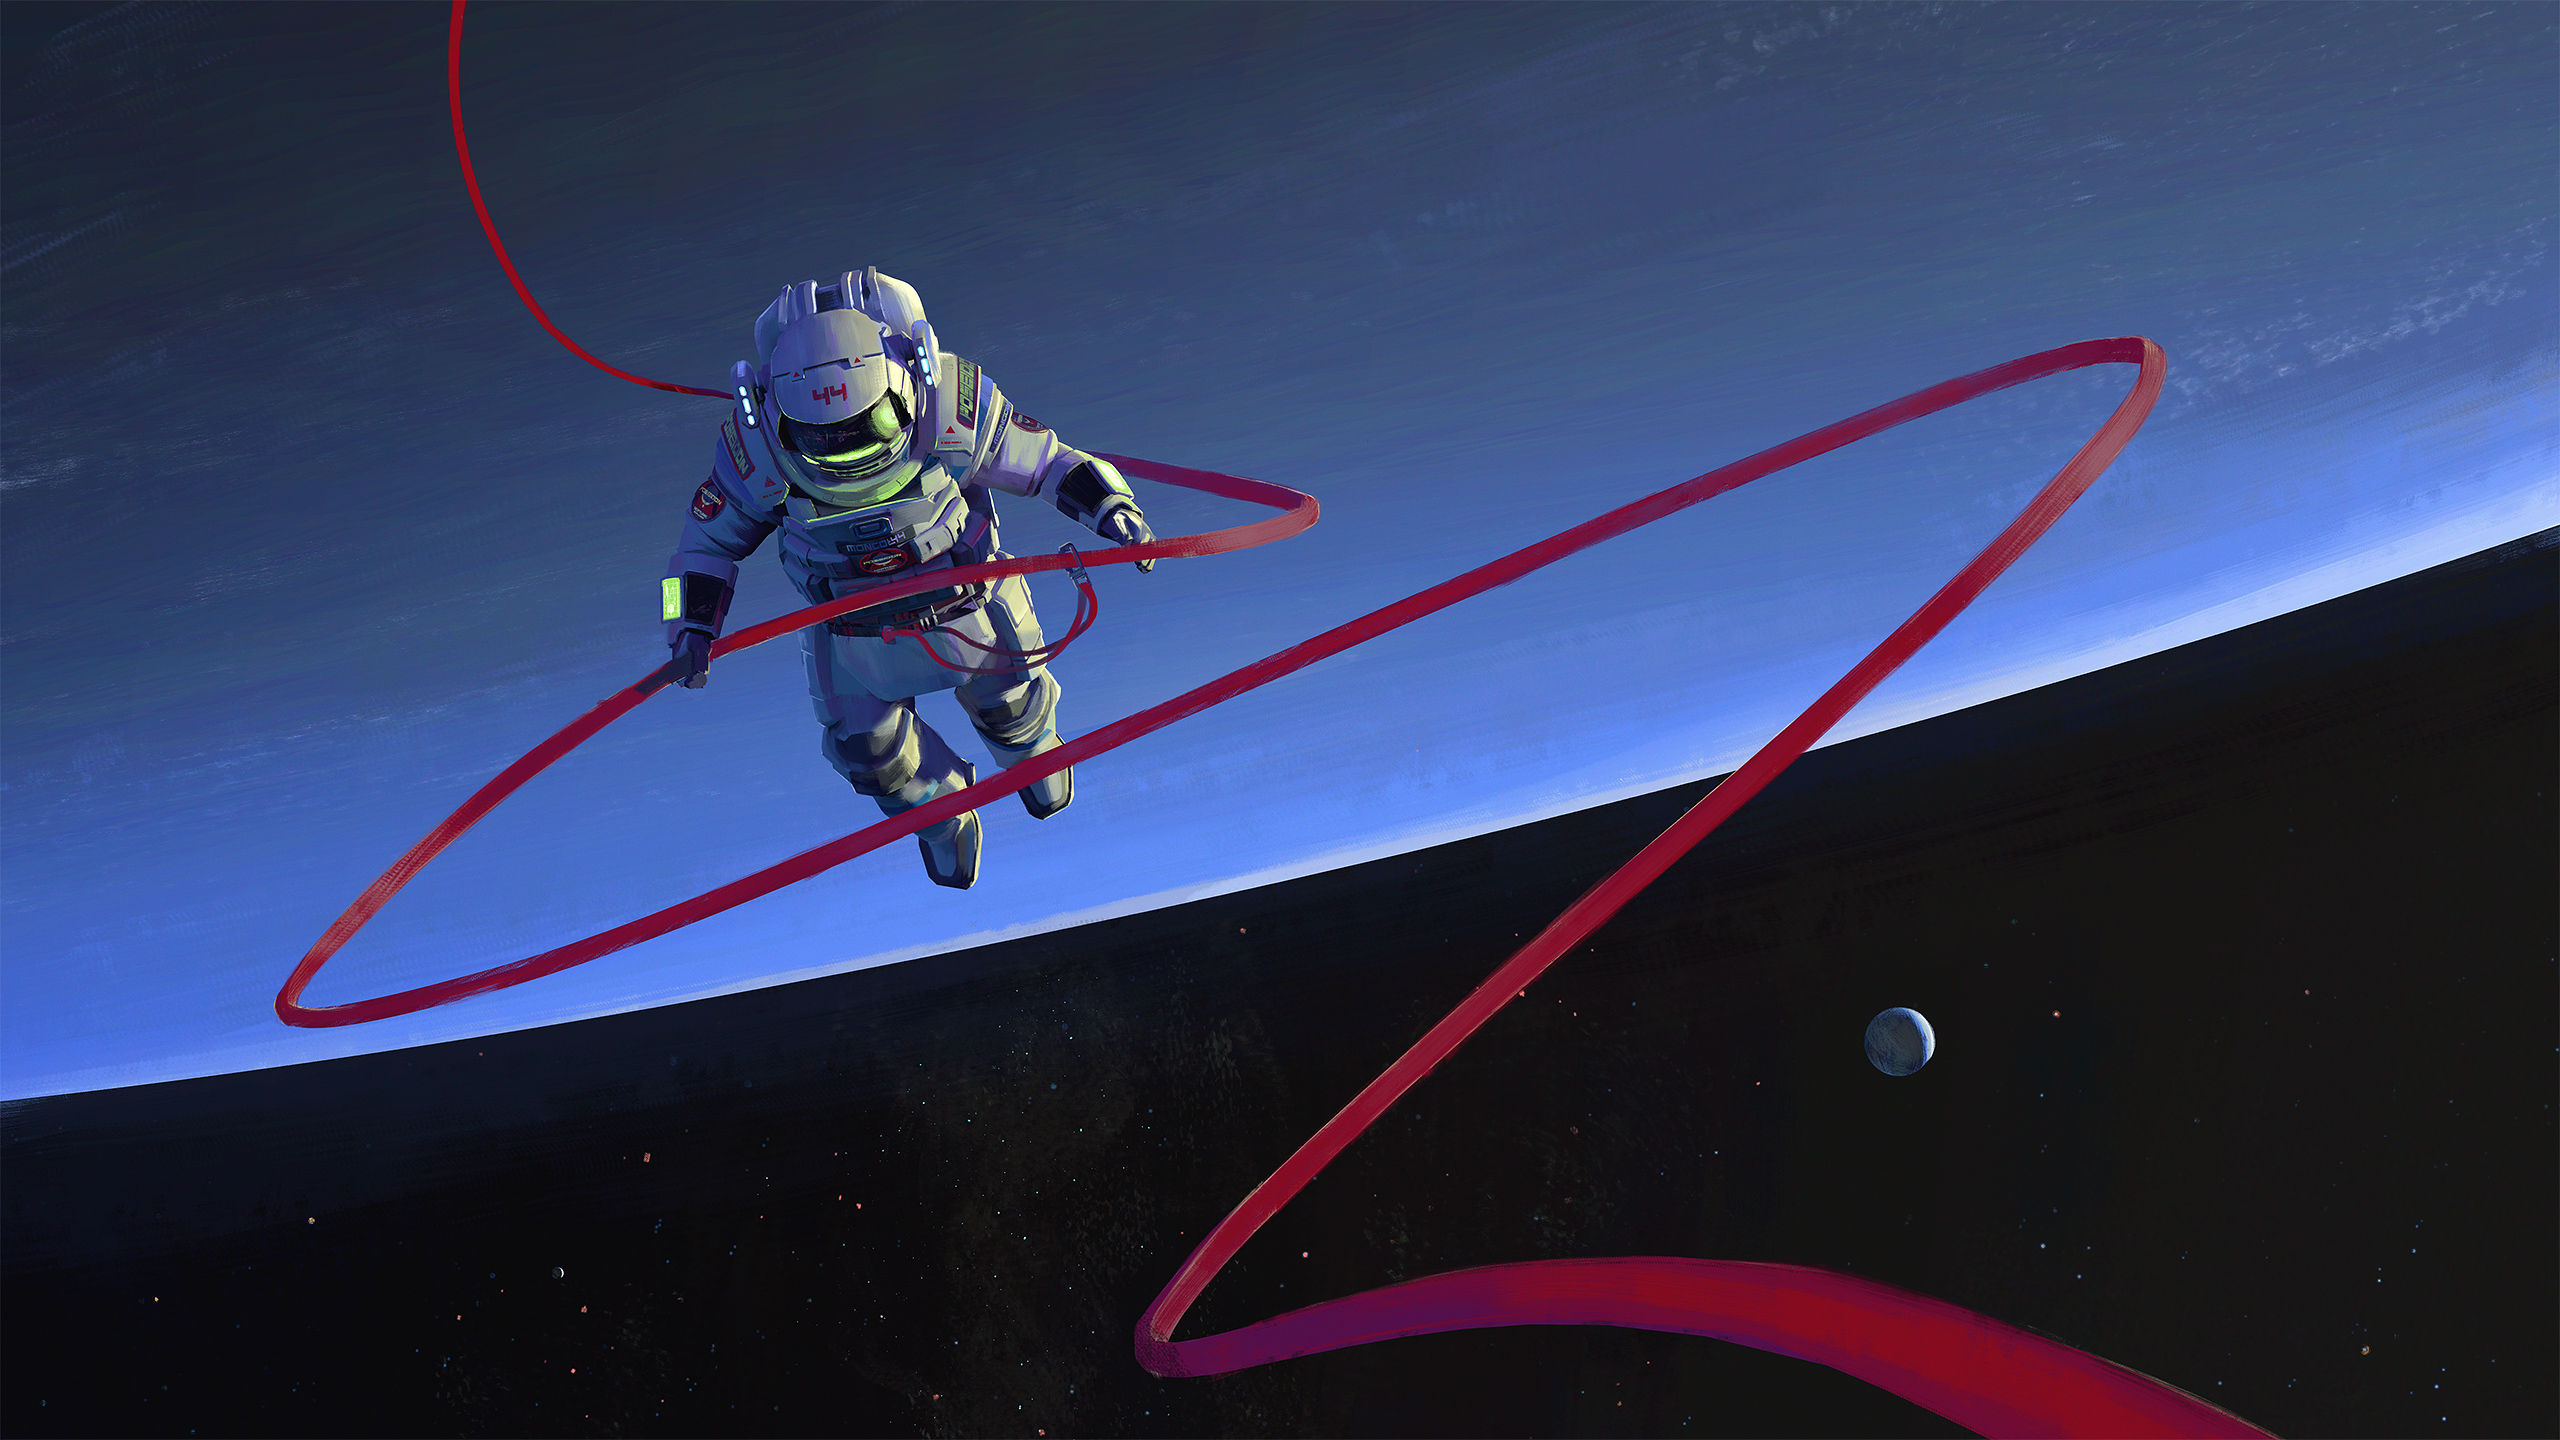 General 2560x1440 artwork digital art science fiction space spaceship astronaut